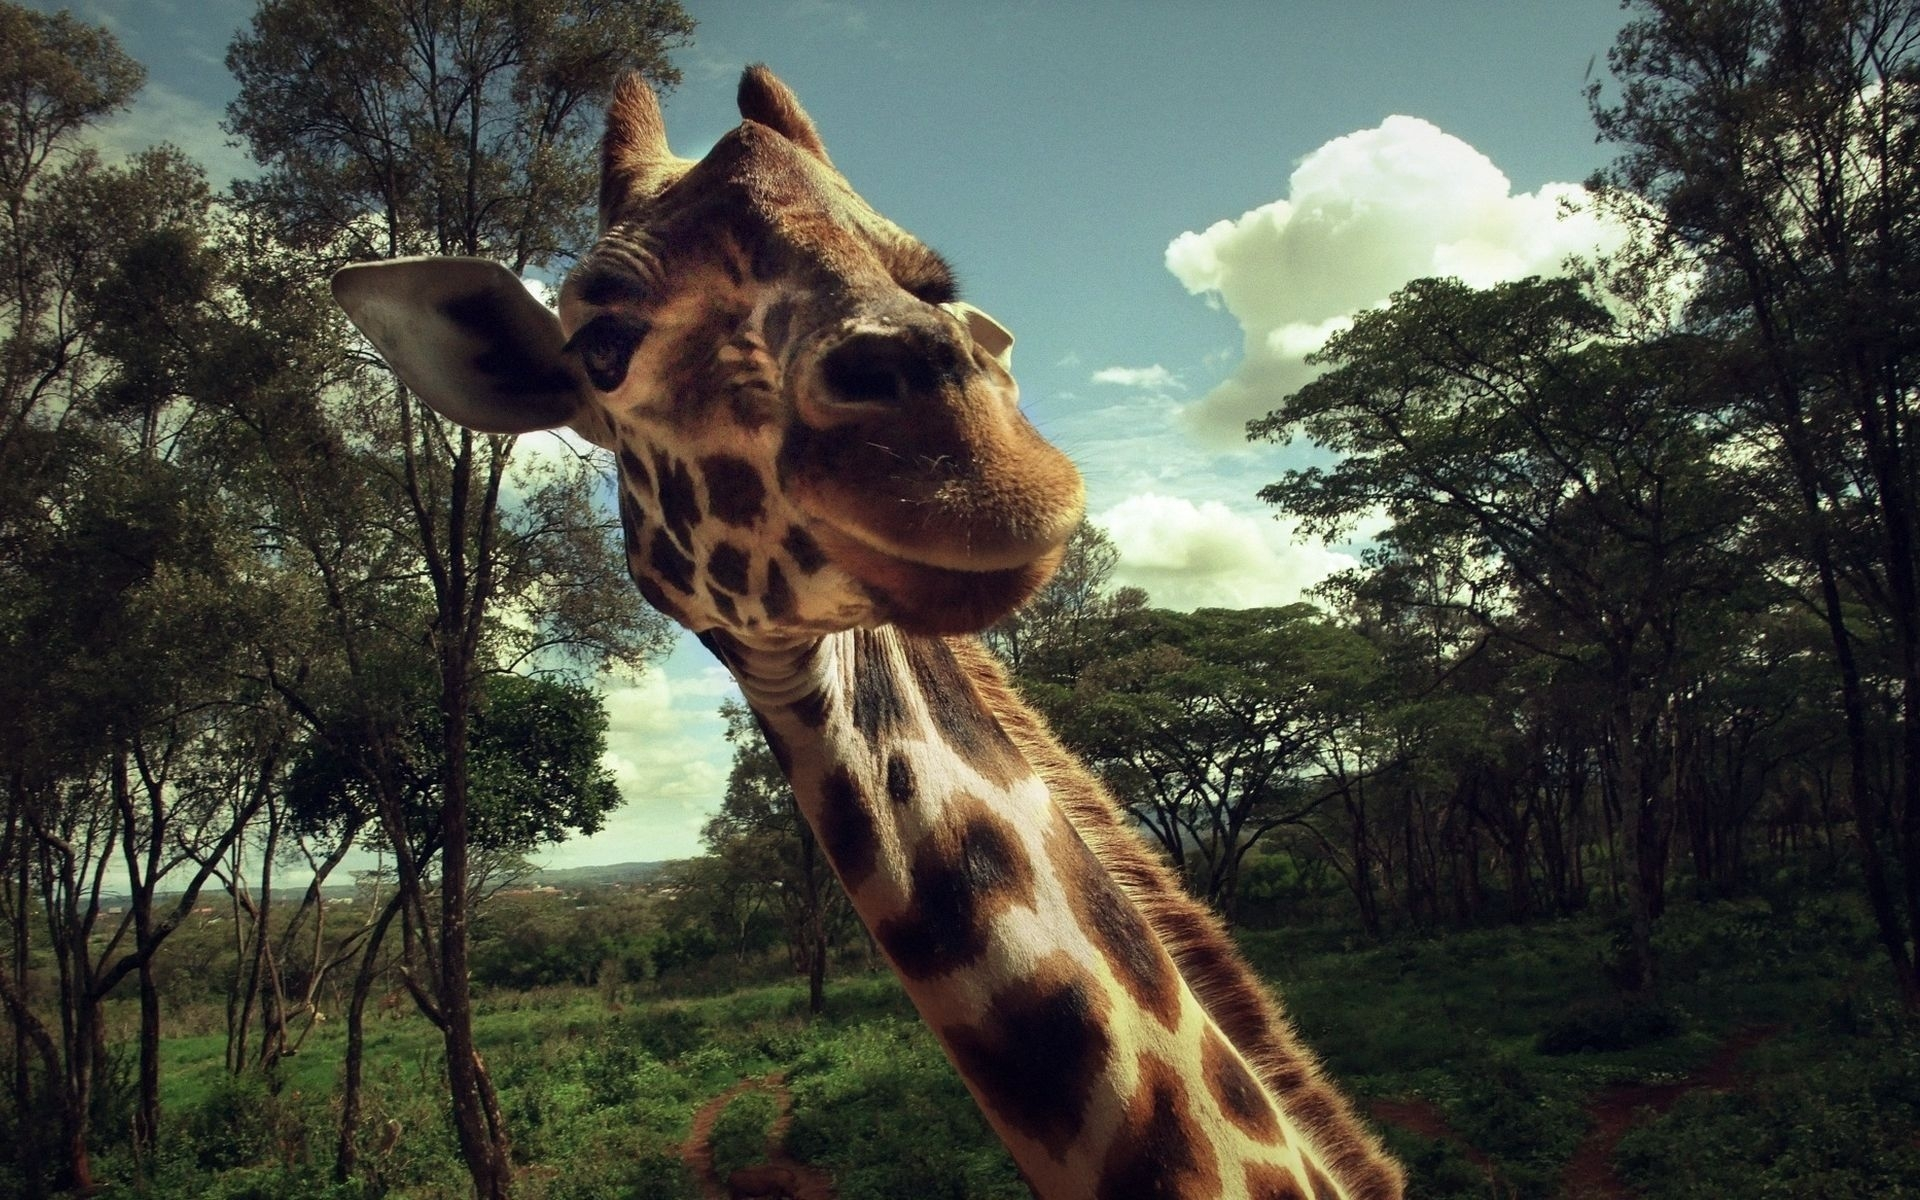 49147 download wallpaper Animals, Giraffes screensavers and pictures for free